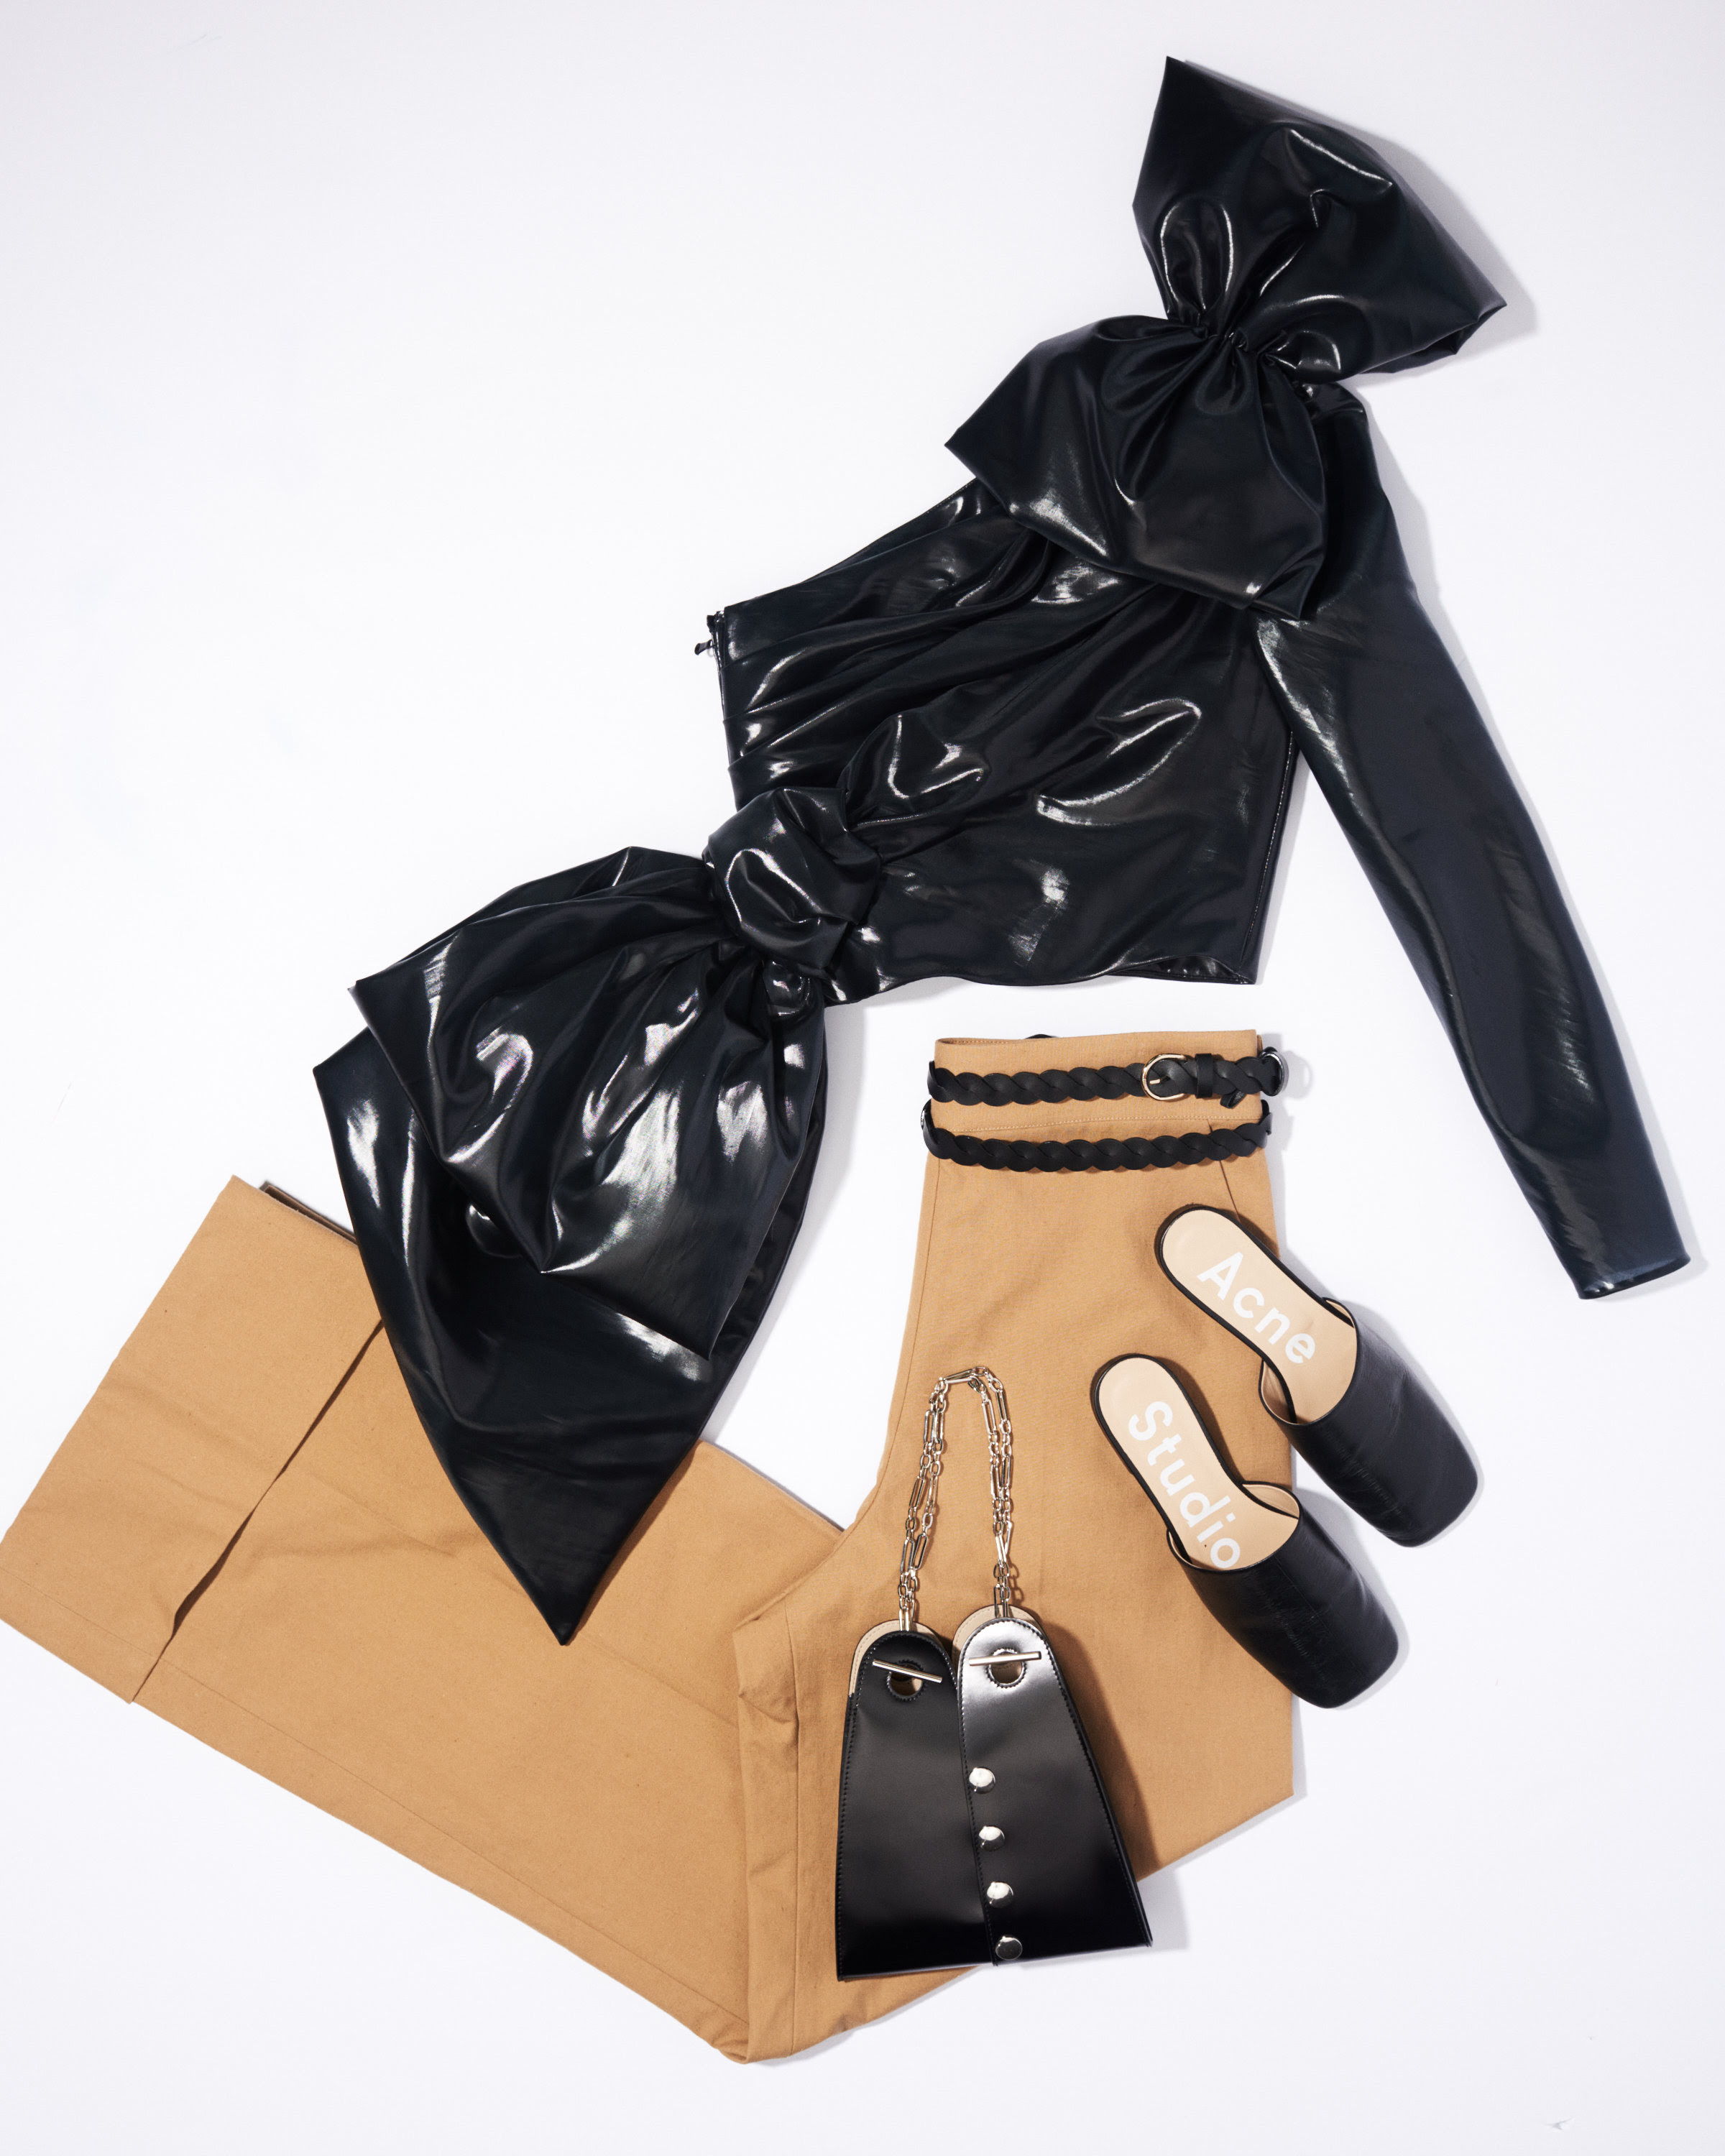 Moschino Bow Top 1,795 | Acne Studios Pants $500 | Lemaire $850 | Nina Ricci Belt $490 | Acne Studios $480